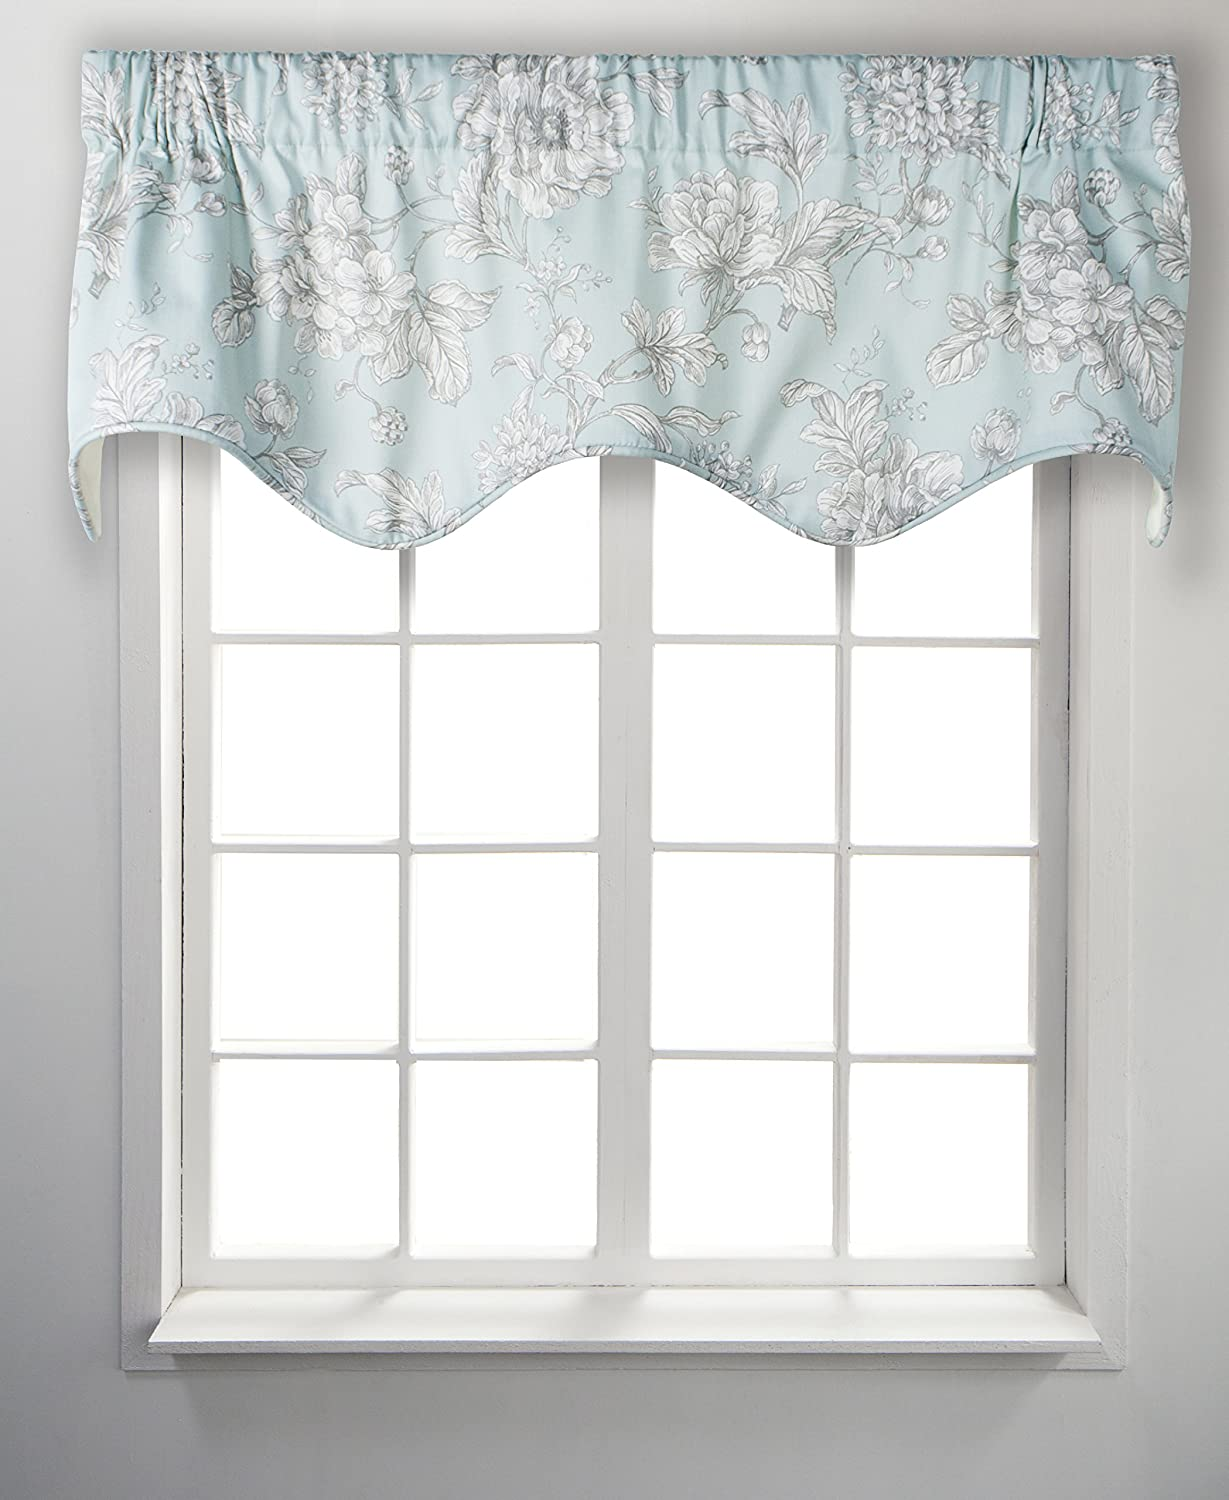 50 X15 Meadow Solid Lined Scallop Window Valance By Ellis Curtain Garden Curtains Window Treatments Hardware